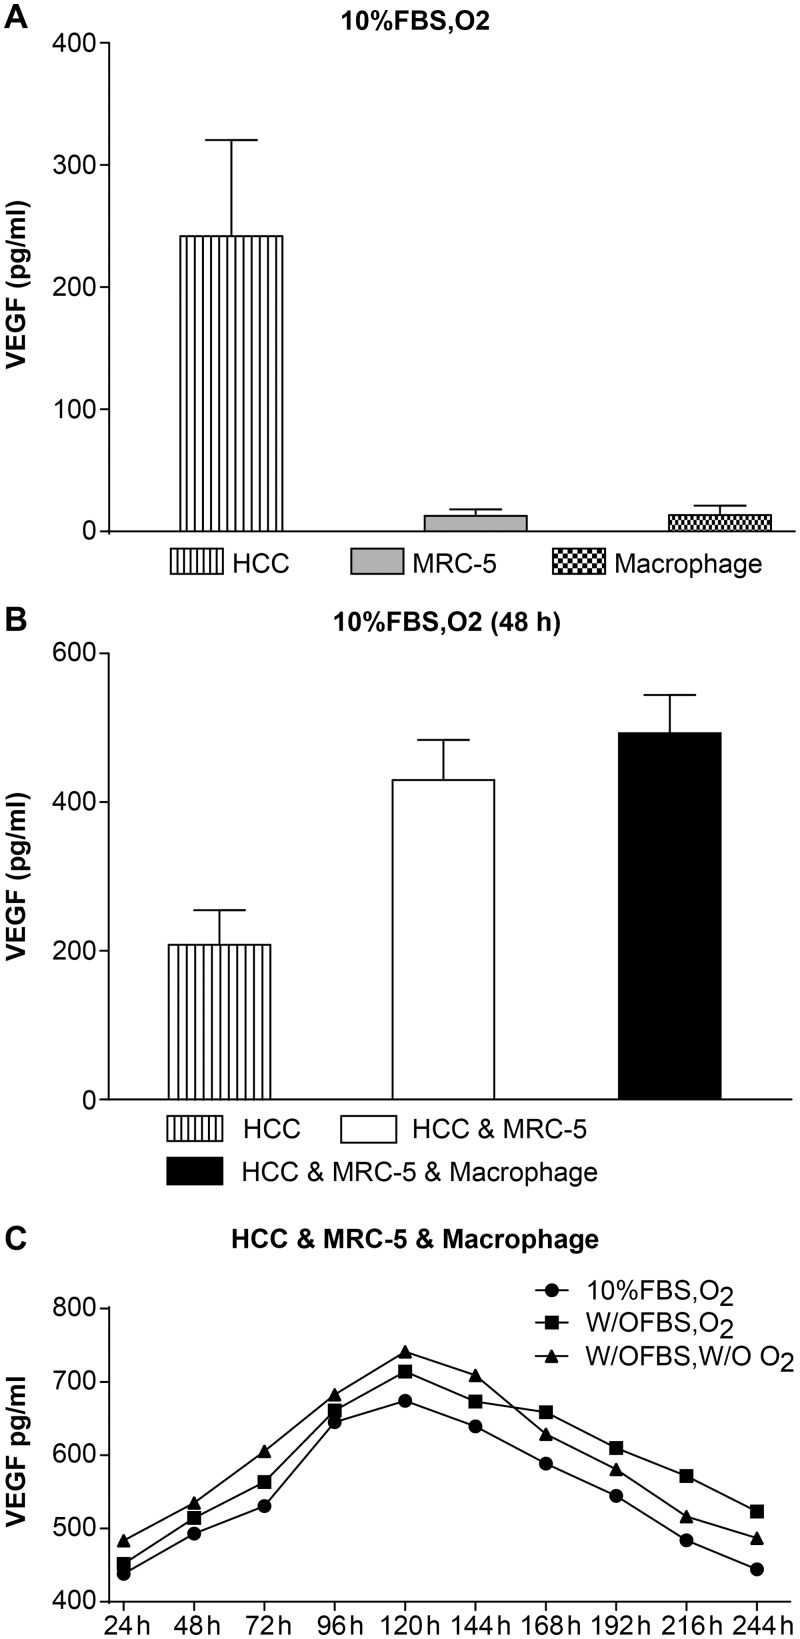 The expression of VEGF. (A) Expression of VEGF in HCC, MRC-5, and macrophage mono-cultures groups. Expression of VEGF in the HCC mono-culture group was significantly higher than expression in the MRC-5/macrophage mono-culture group under 10% FBS and O 2 culture conditions. (B) Expression of VEGF in HCC, MRC-5, and macrophage co-culture groups compared with the HCC mono-culture group. Expression of VEGF in the HCC MRC-5 Macrophage co-culture group was higher than in the HCC MRC-5 co-culture group and the HCC mono-culture group cultured with 10% FBS and O 2 for 48 h. (C) Expression of VEGF in HCC, MRC-5, and macrophage co-culture groups under different co-culture conditions. The expression of VEGF in cells cultured w/o FBS (starved of FBS but with O 2 ), w/o FBS and w/o O 2 (without FBS and without O 2 ) was higher than that in 10% FBS or O 2 (10% FBS cell culture medium with O 2 ), while the expression of VEGF in the three different conditions first increased and then decreased.